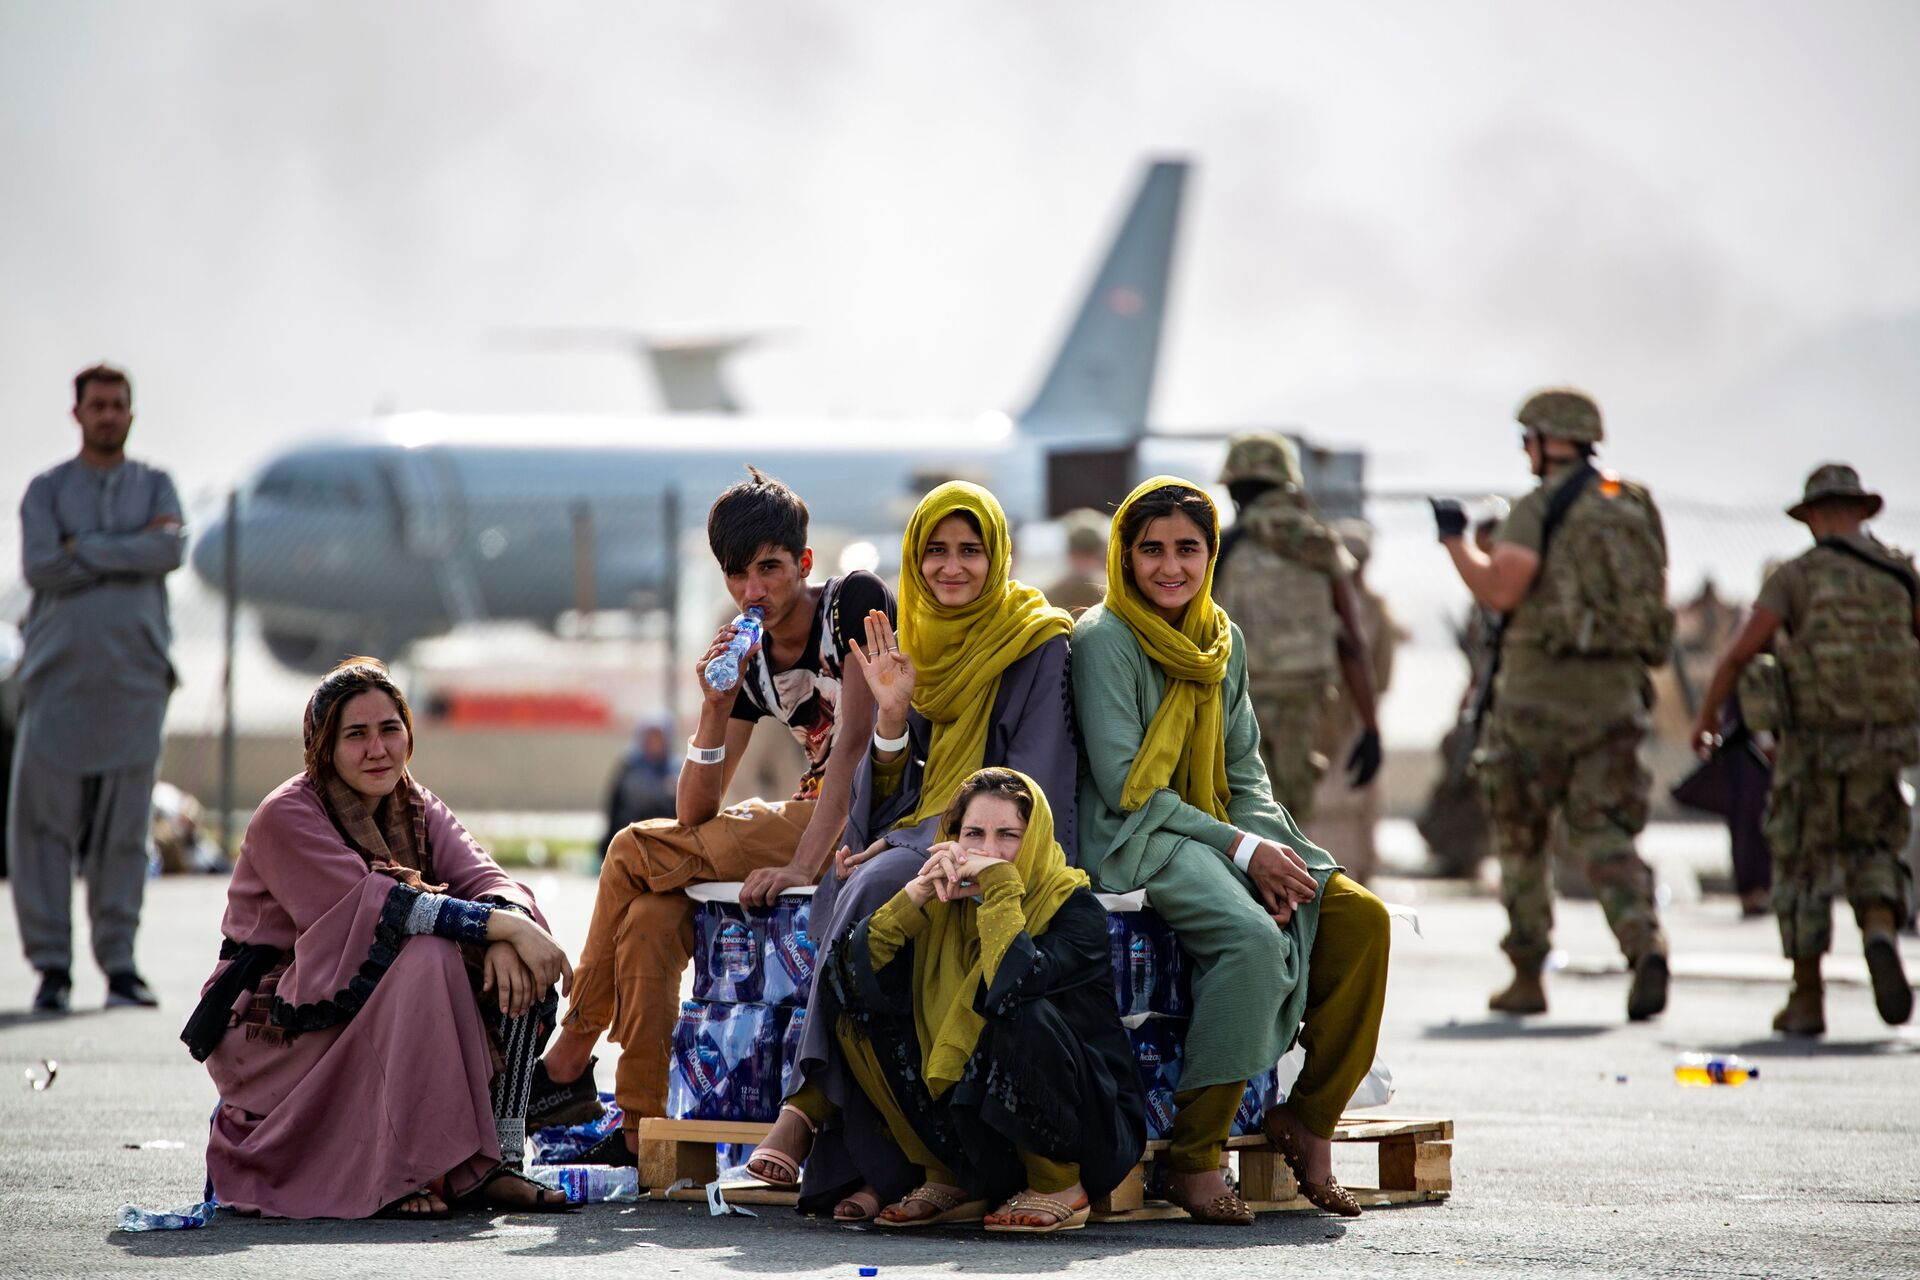 Evacuee children wait for the next flight after being manifested at Hamid Karzai International Airport, in Kabul, Afghanistan, August 19, 2021 - Sputnik International, 1920, 15.09.2021